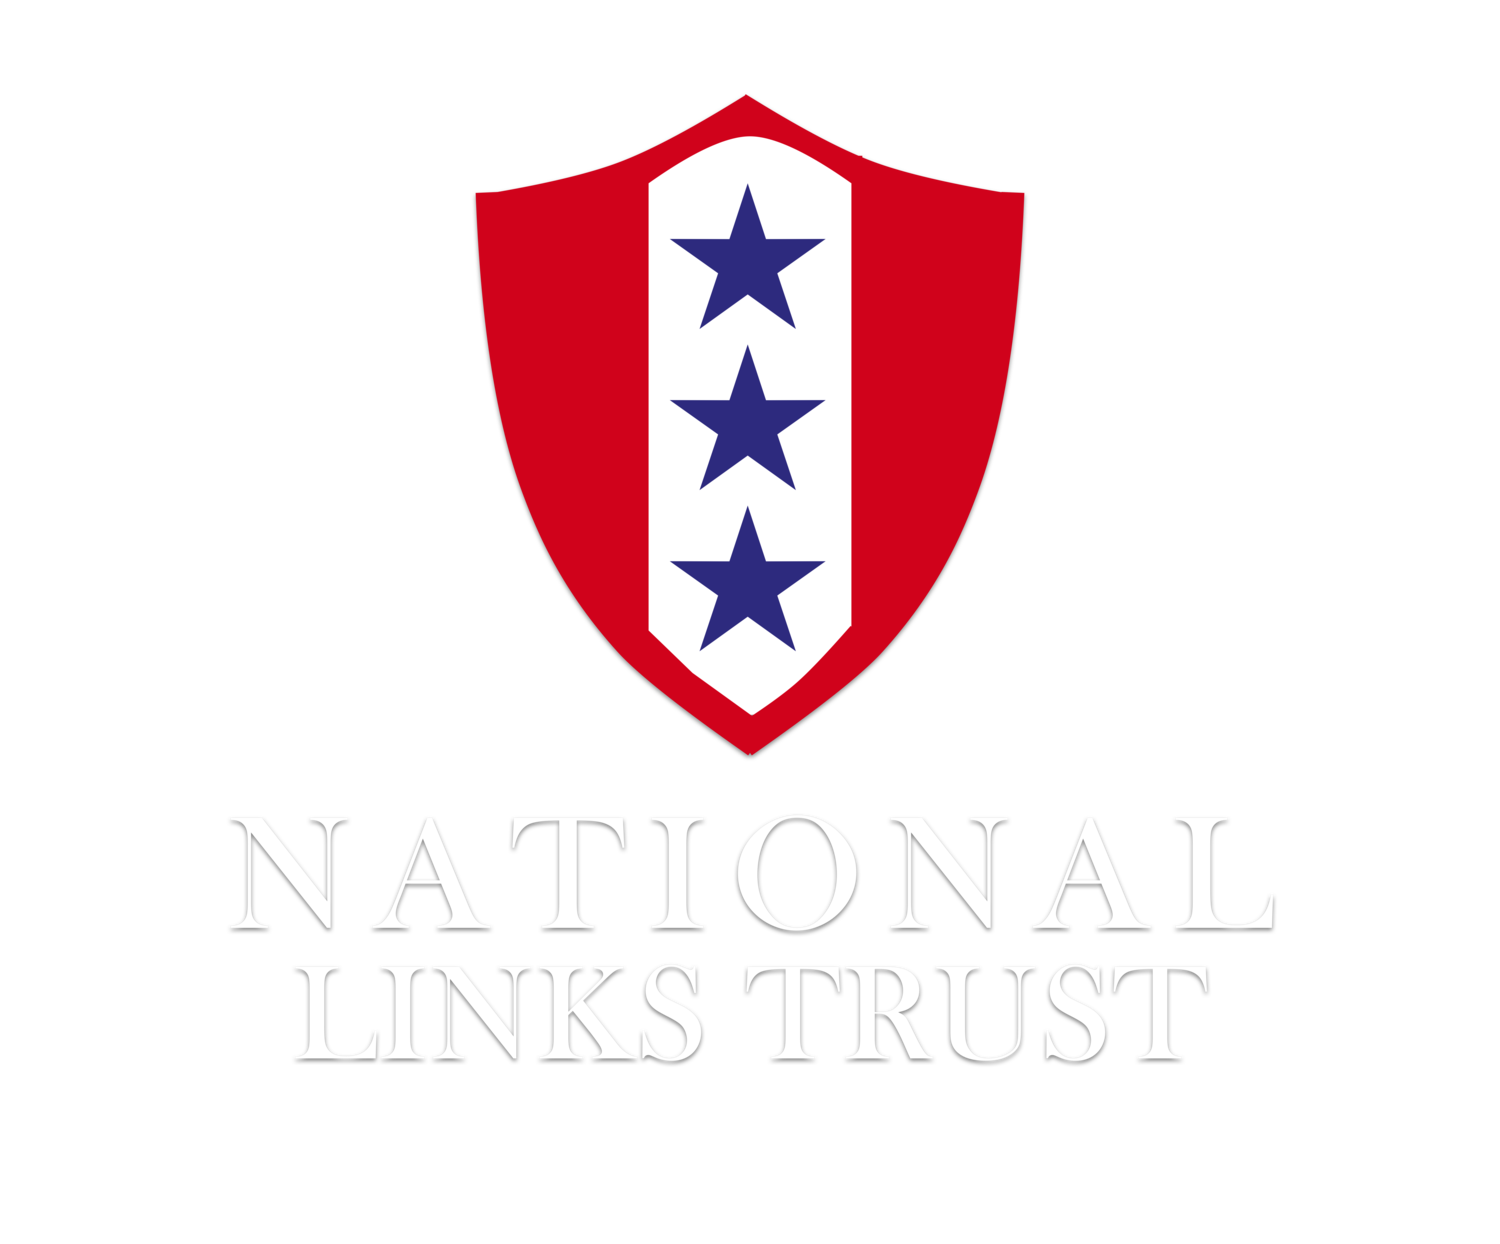 National Links Trust